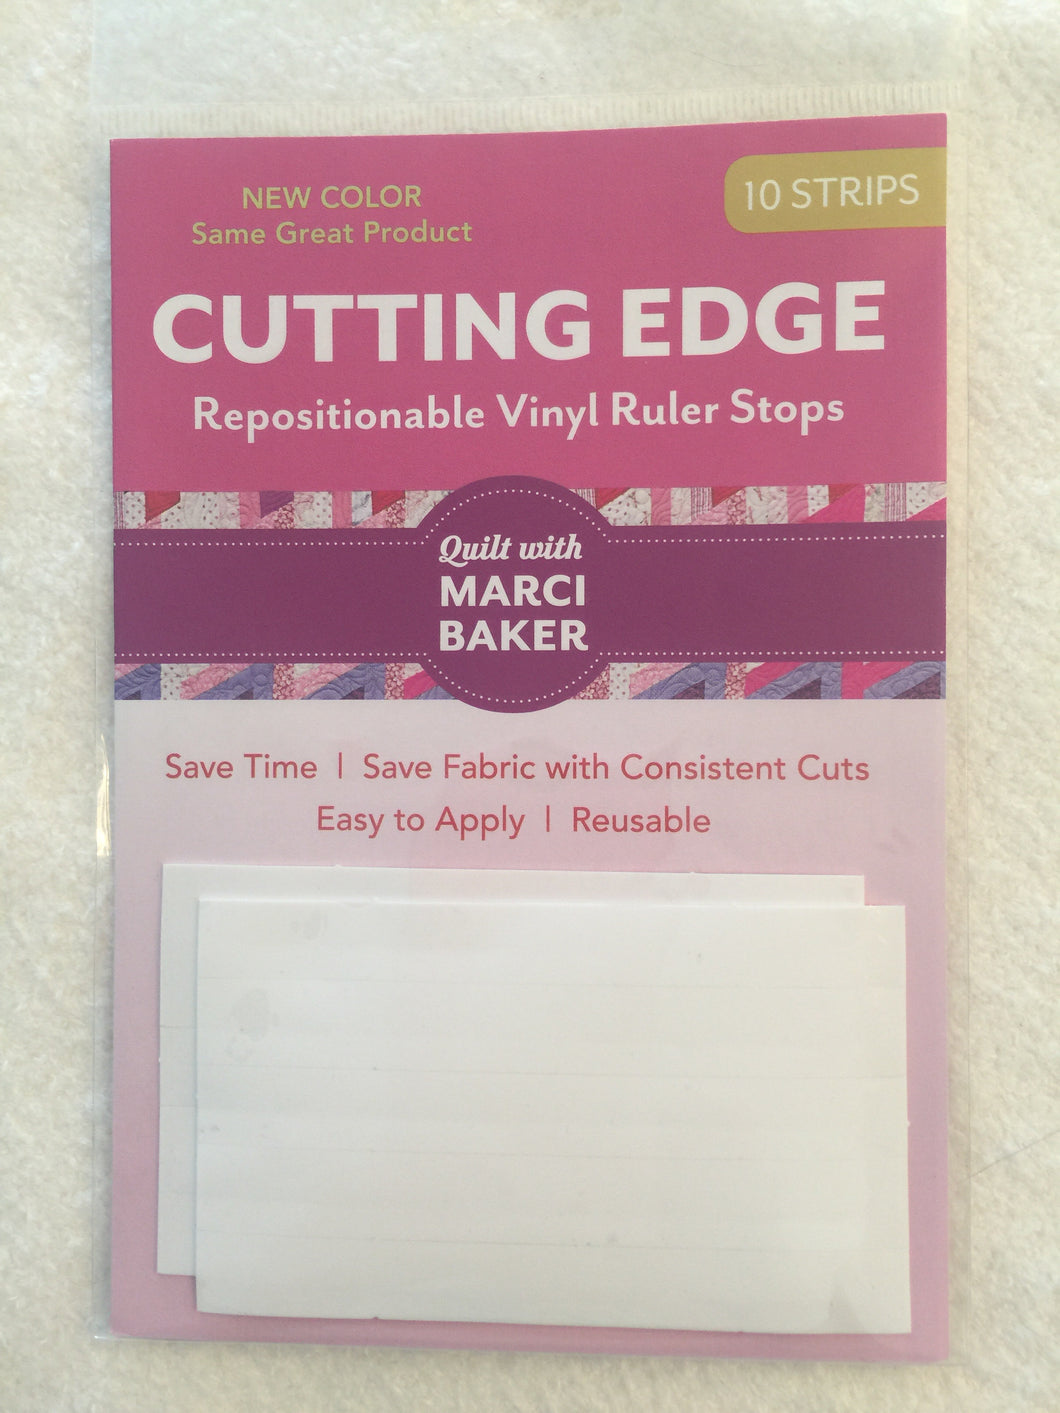 Cutting Edge Vinyl Ruler Stops.